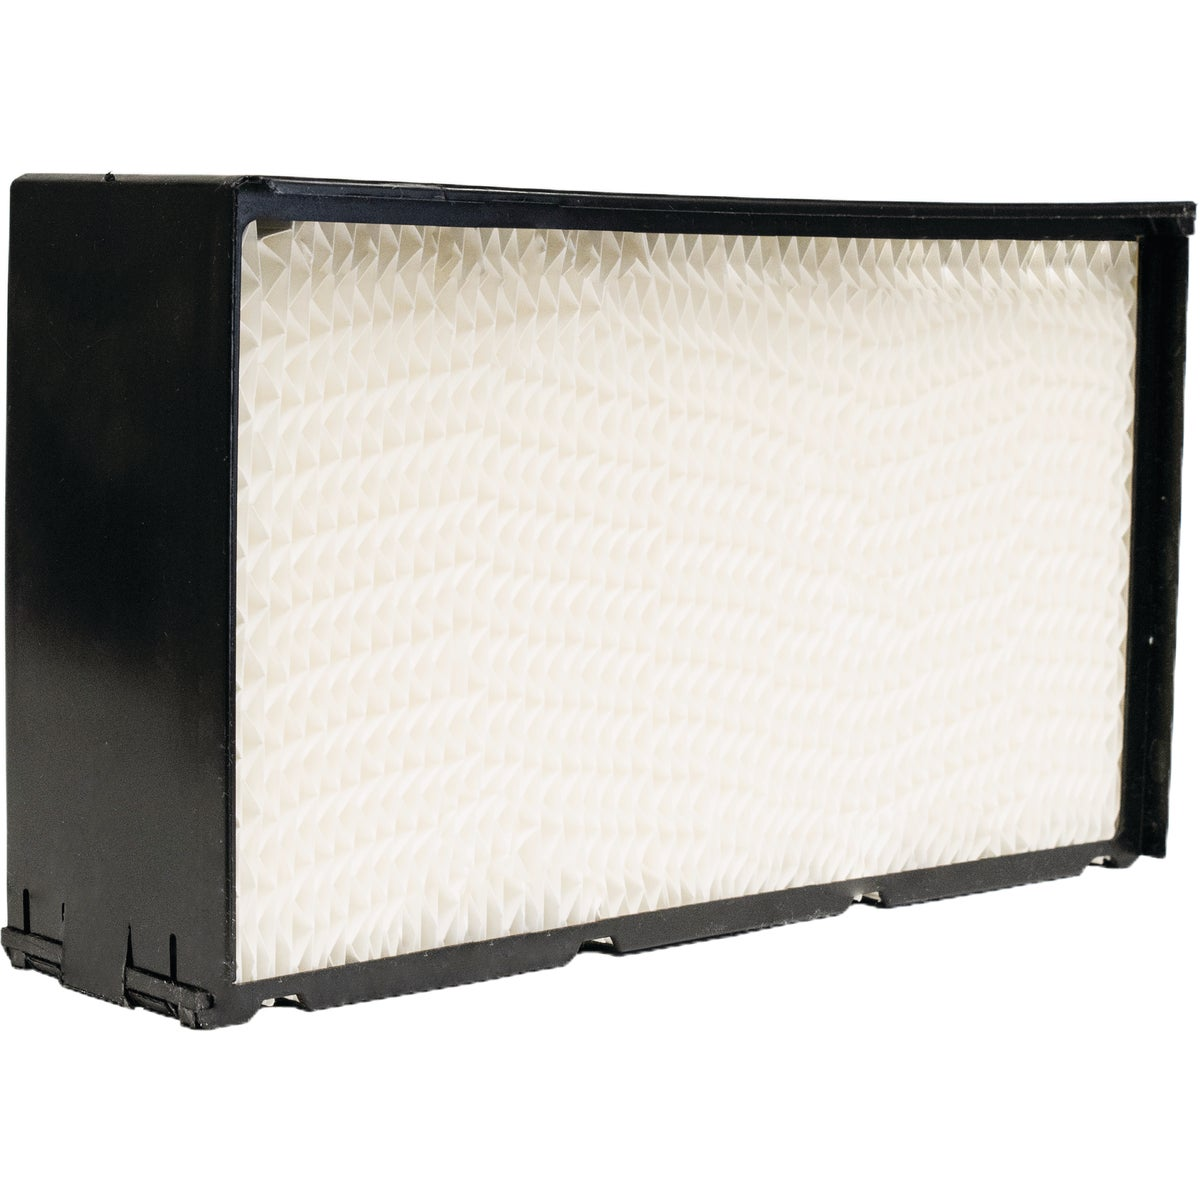 HUMIDIFIER WICK FILTER - 1041 by Essick Air Products